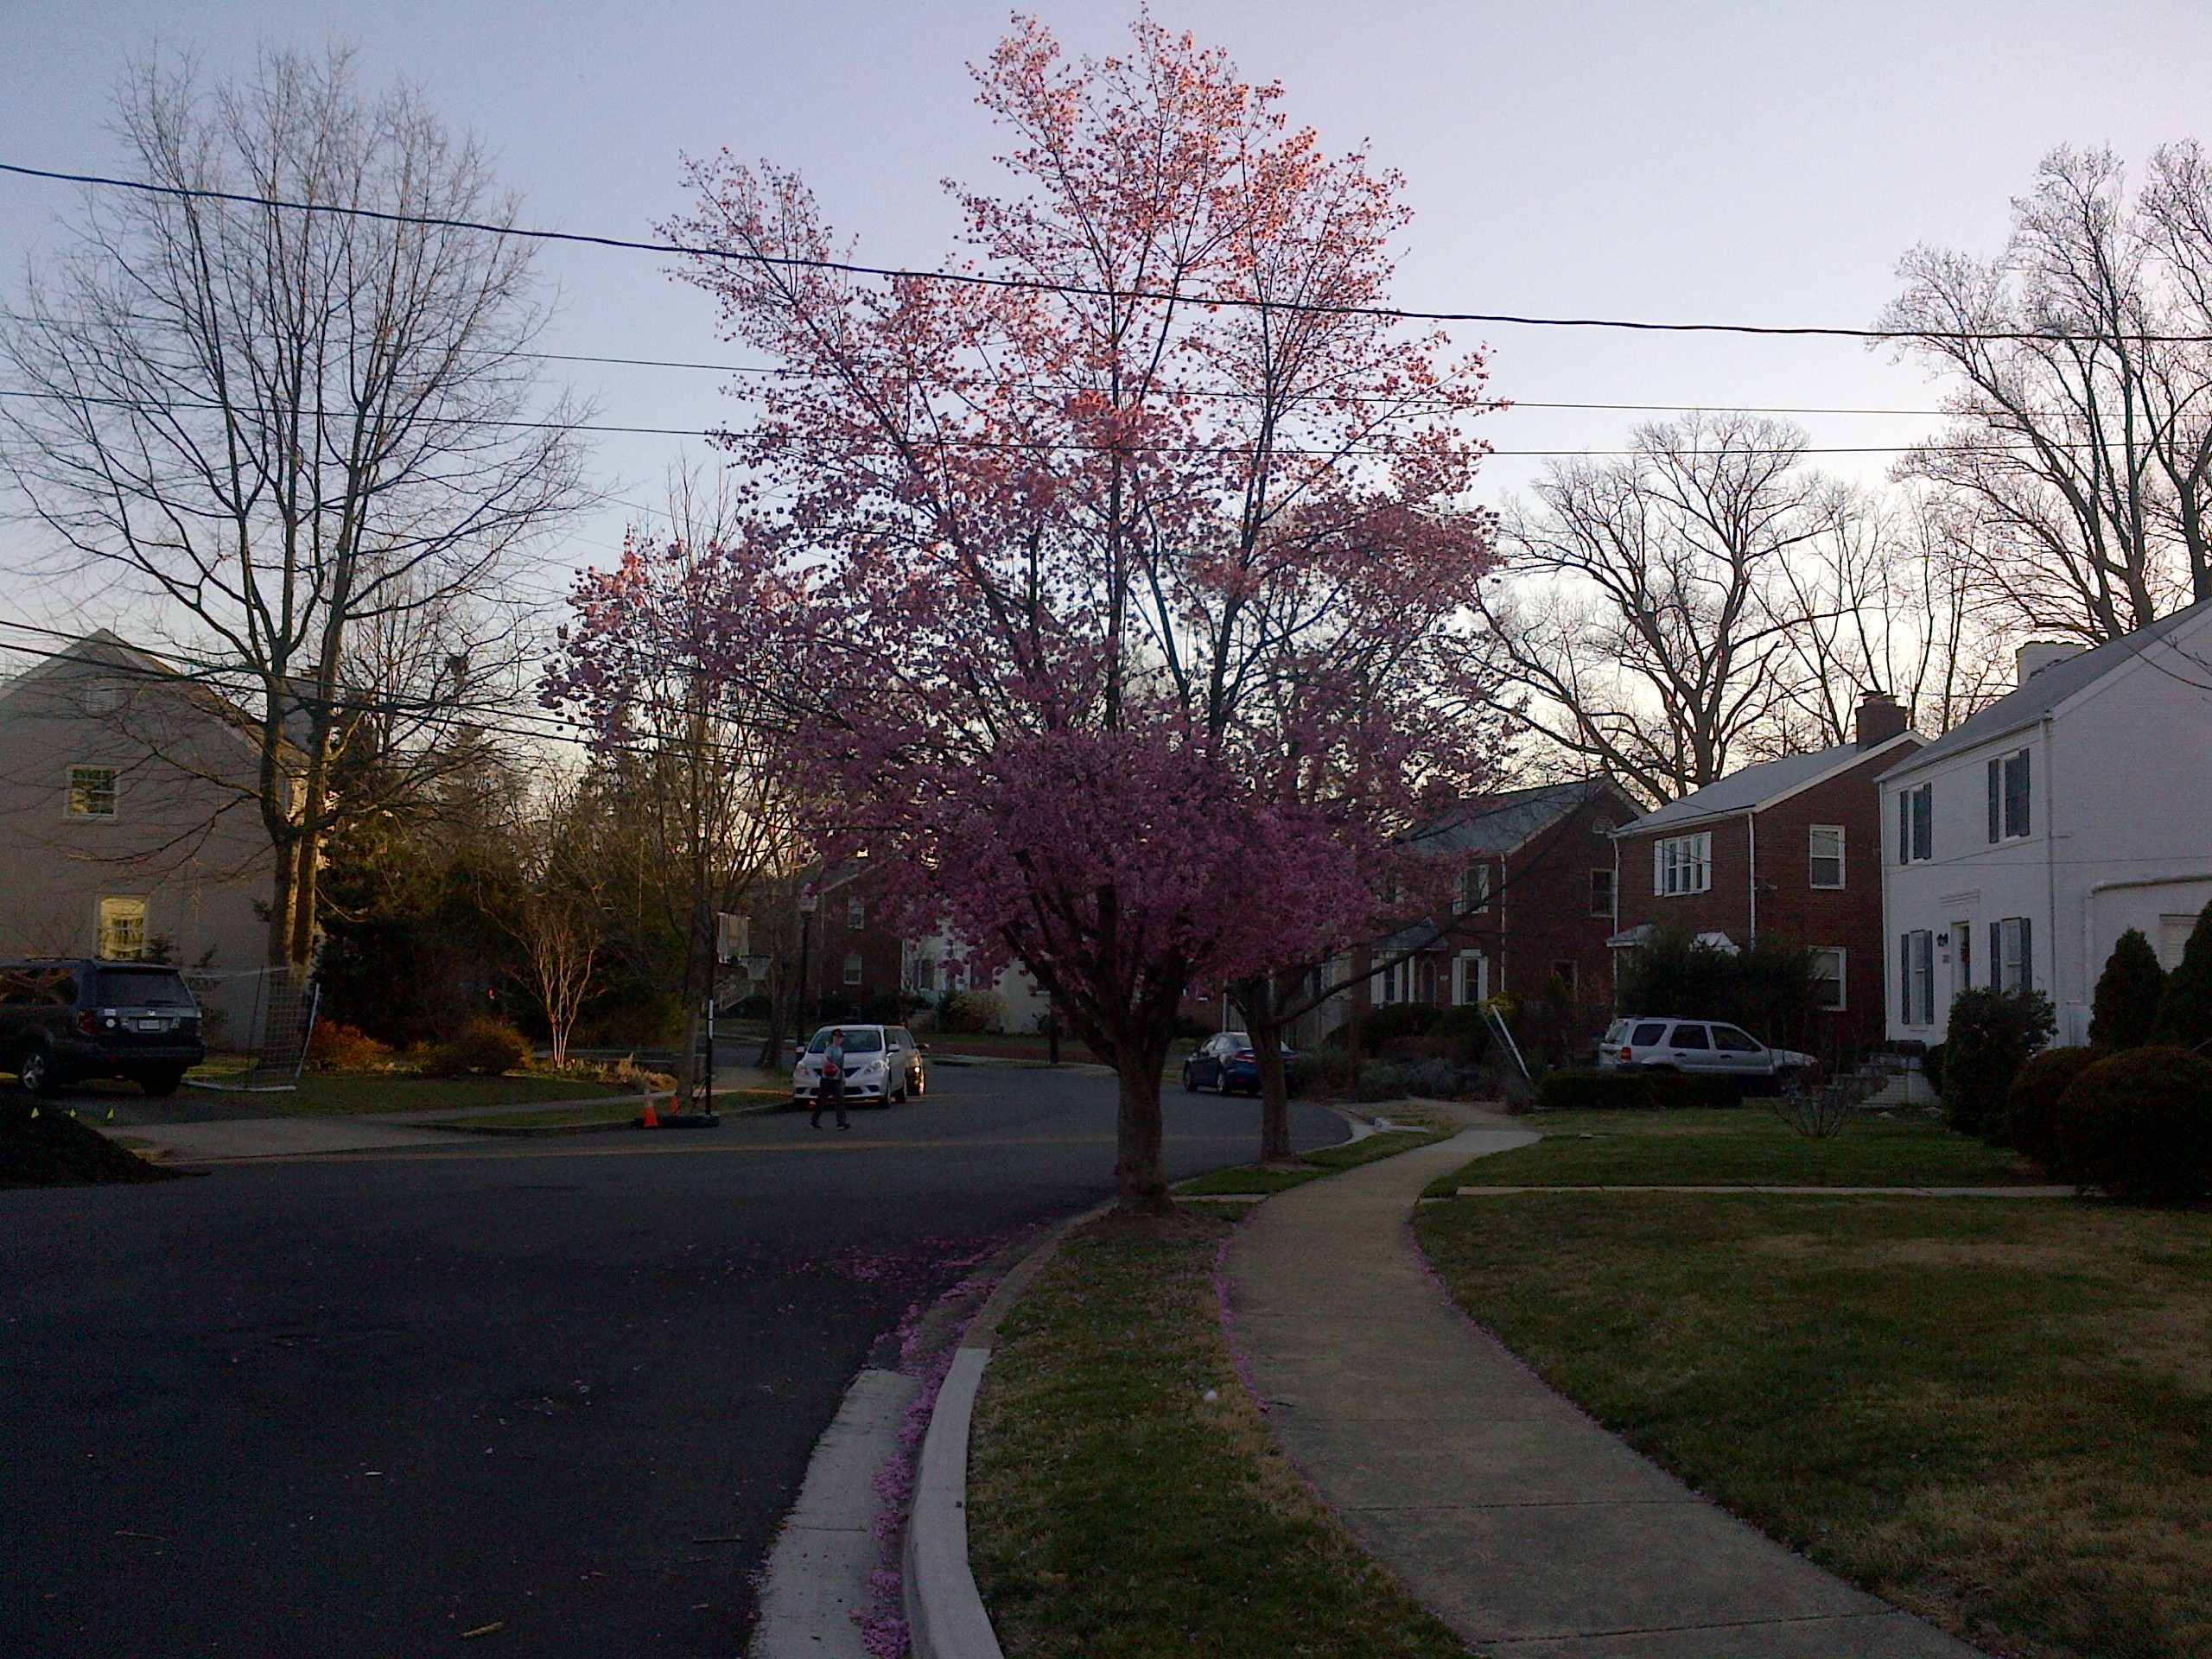 First Blooming Dogwood of Spring